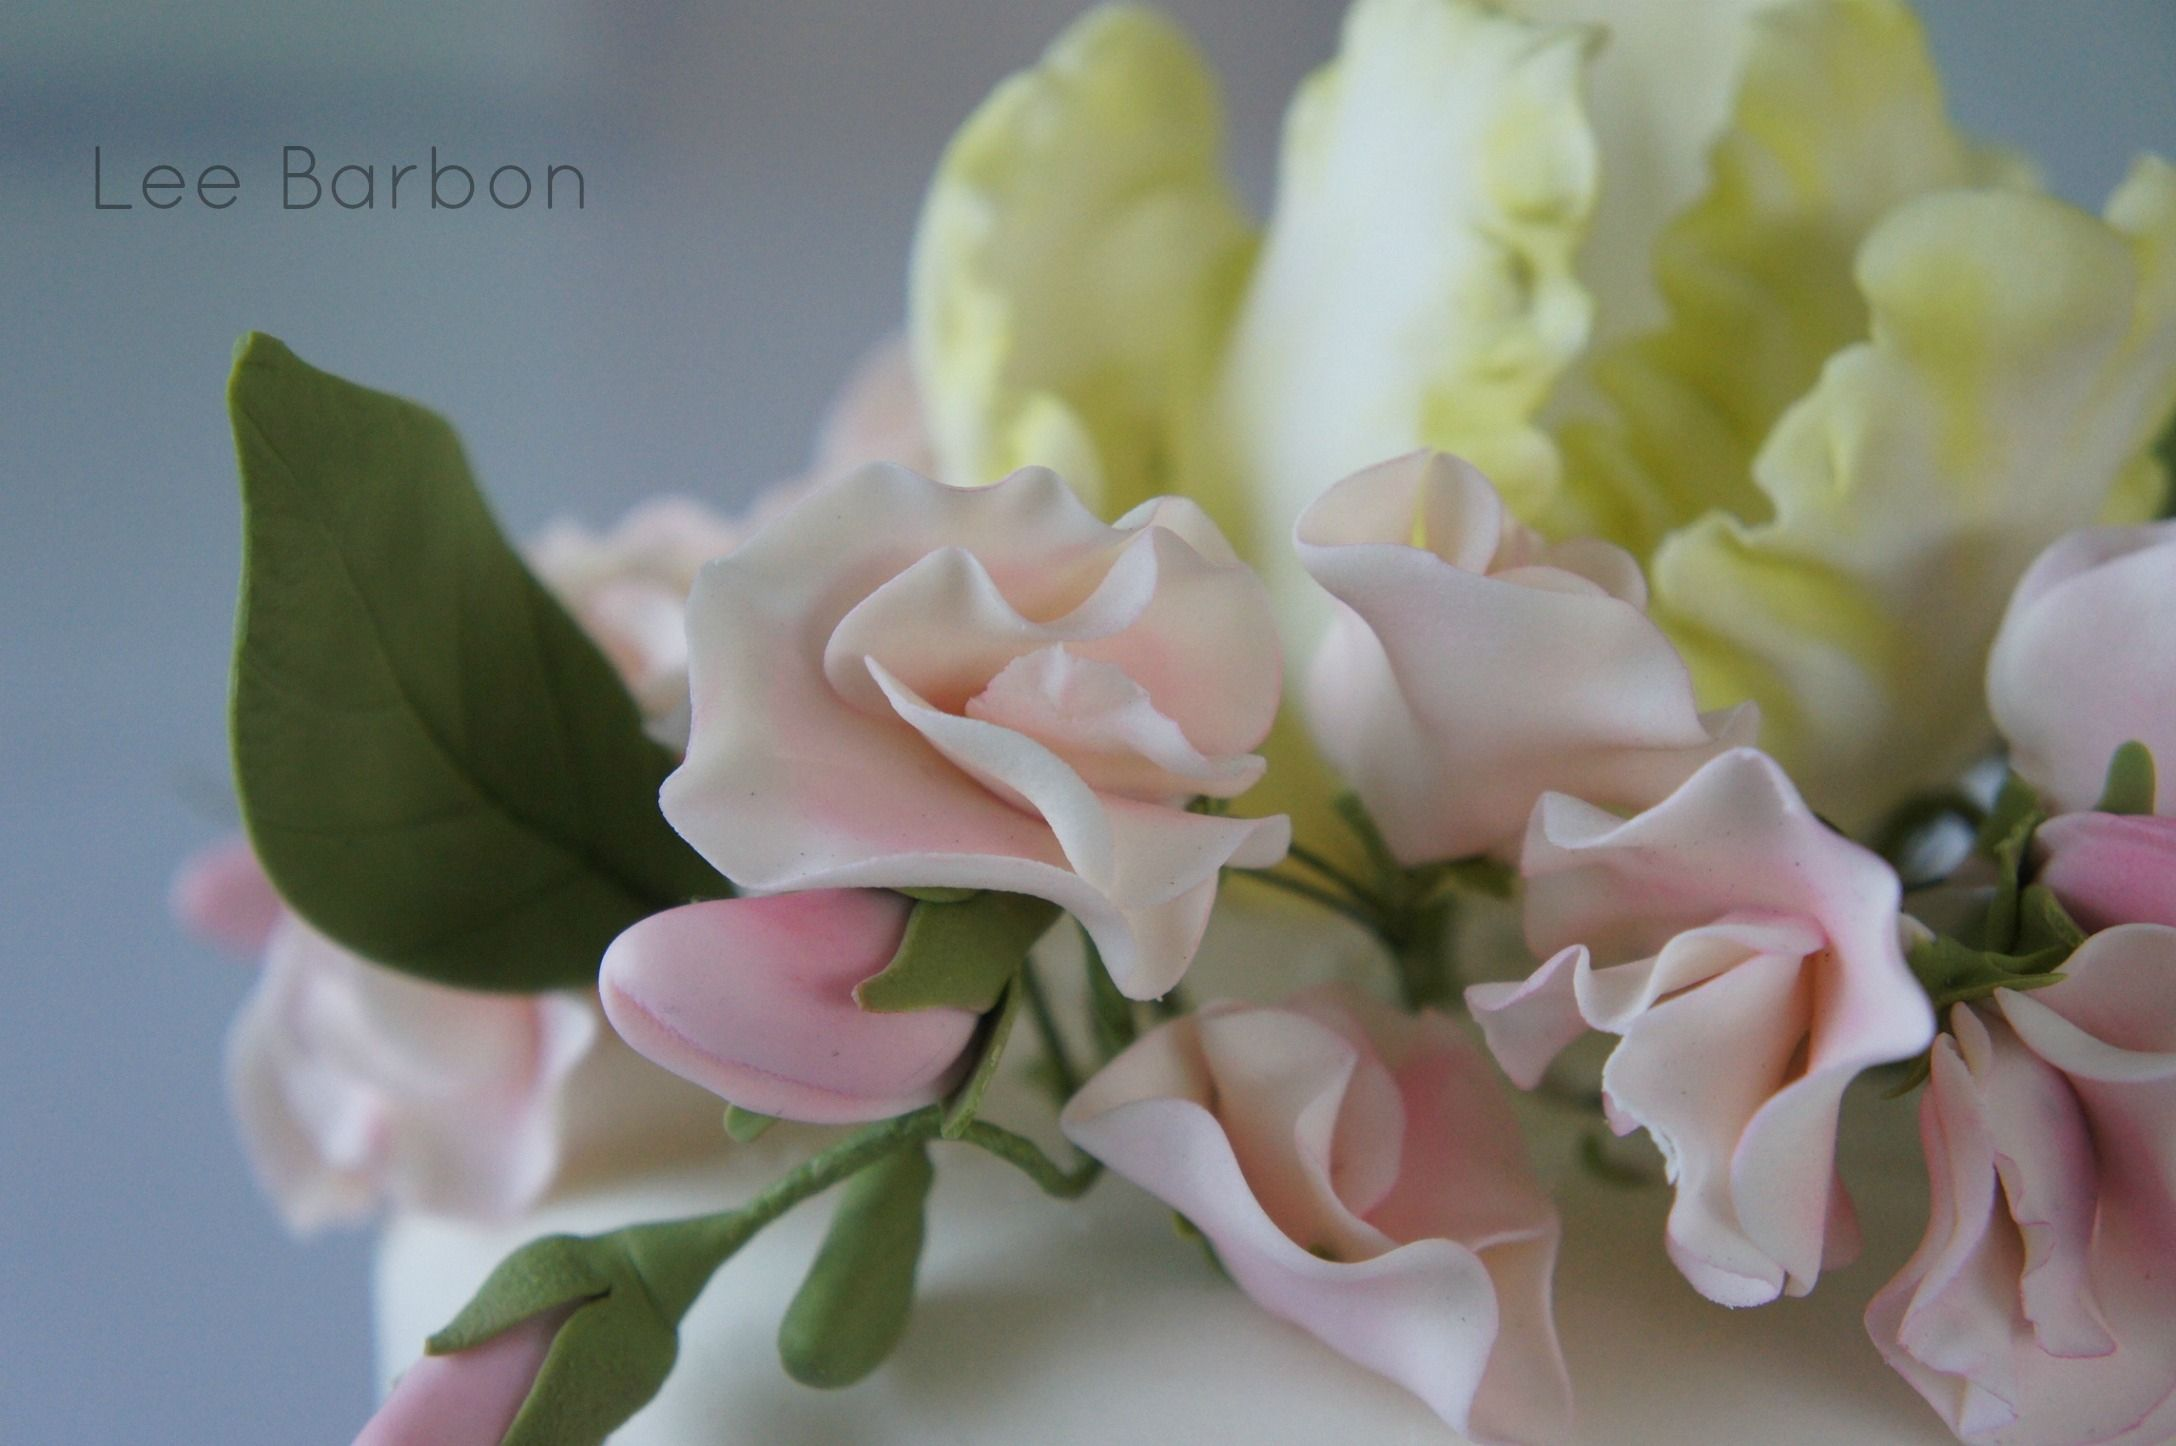 Sweet Peas and Parrot Tulip made of gumpaste